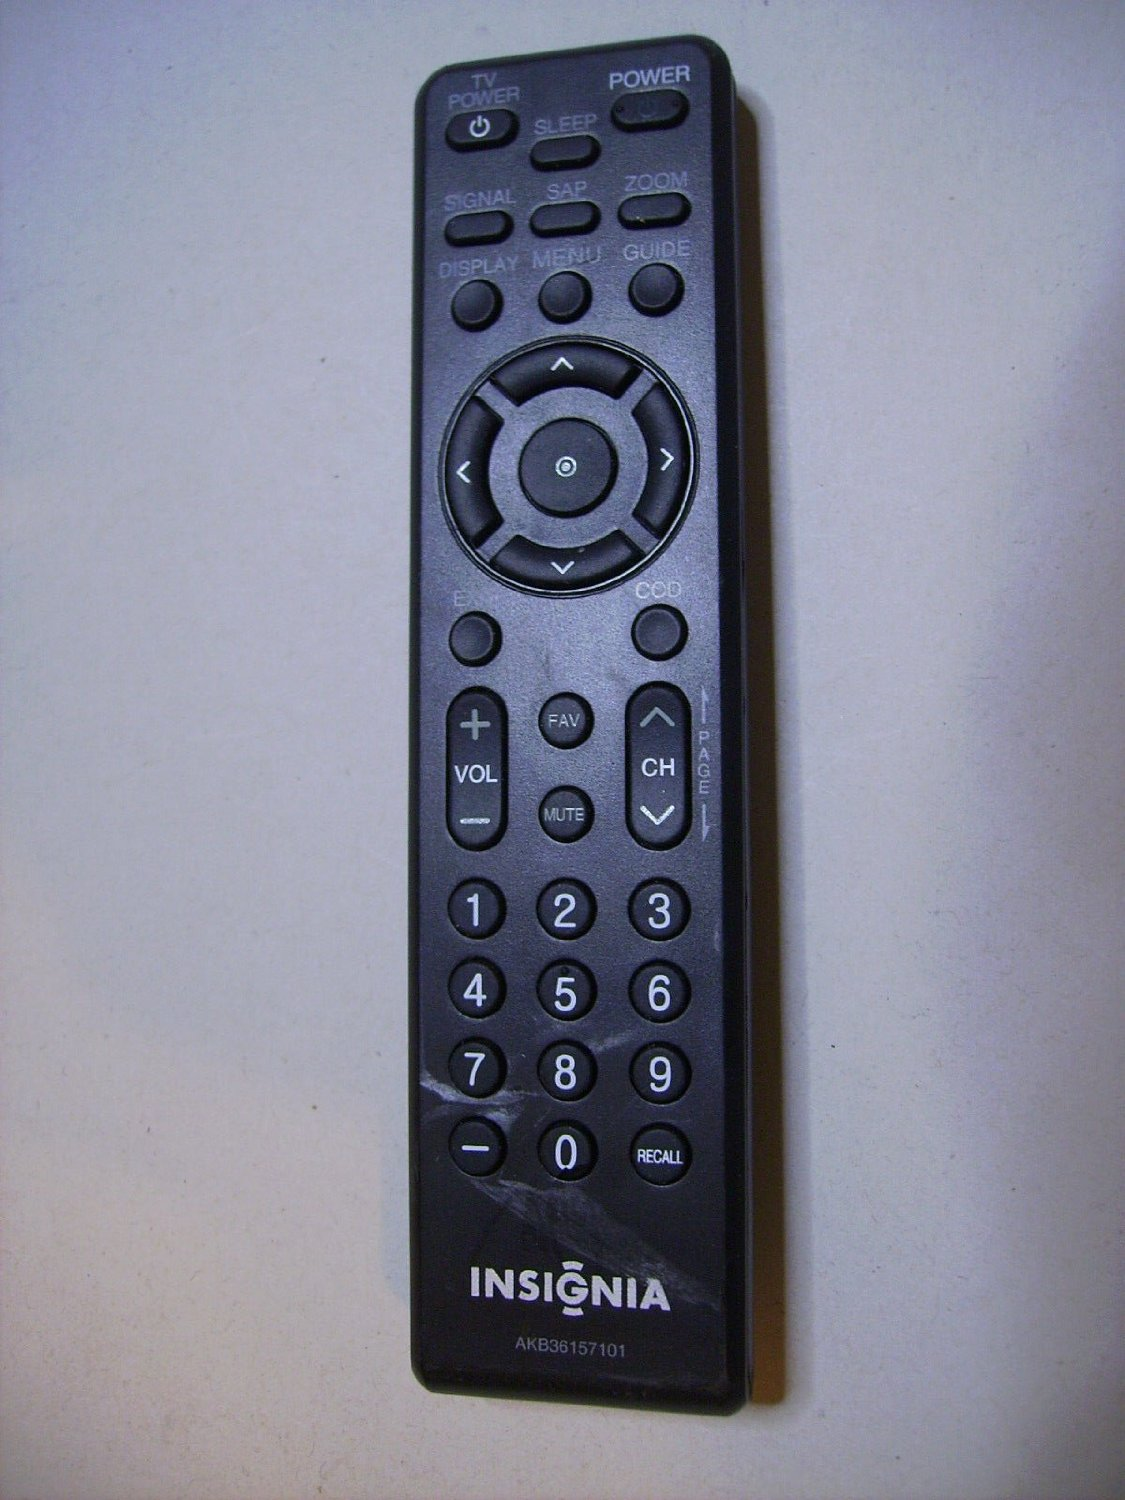 LG/Insignia TV Remote Replacement Insignia AKB36157101 For Insignia NSDXA1